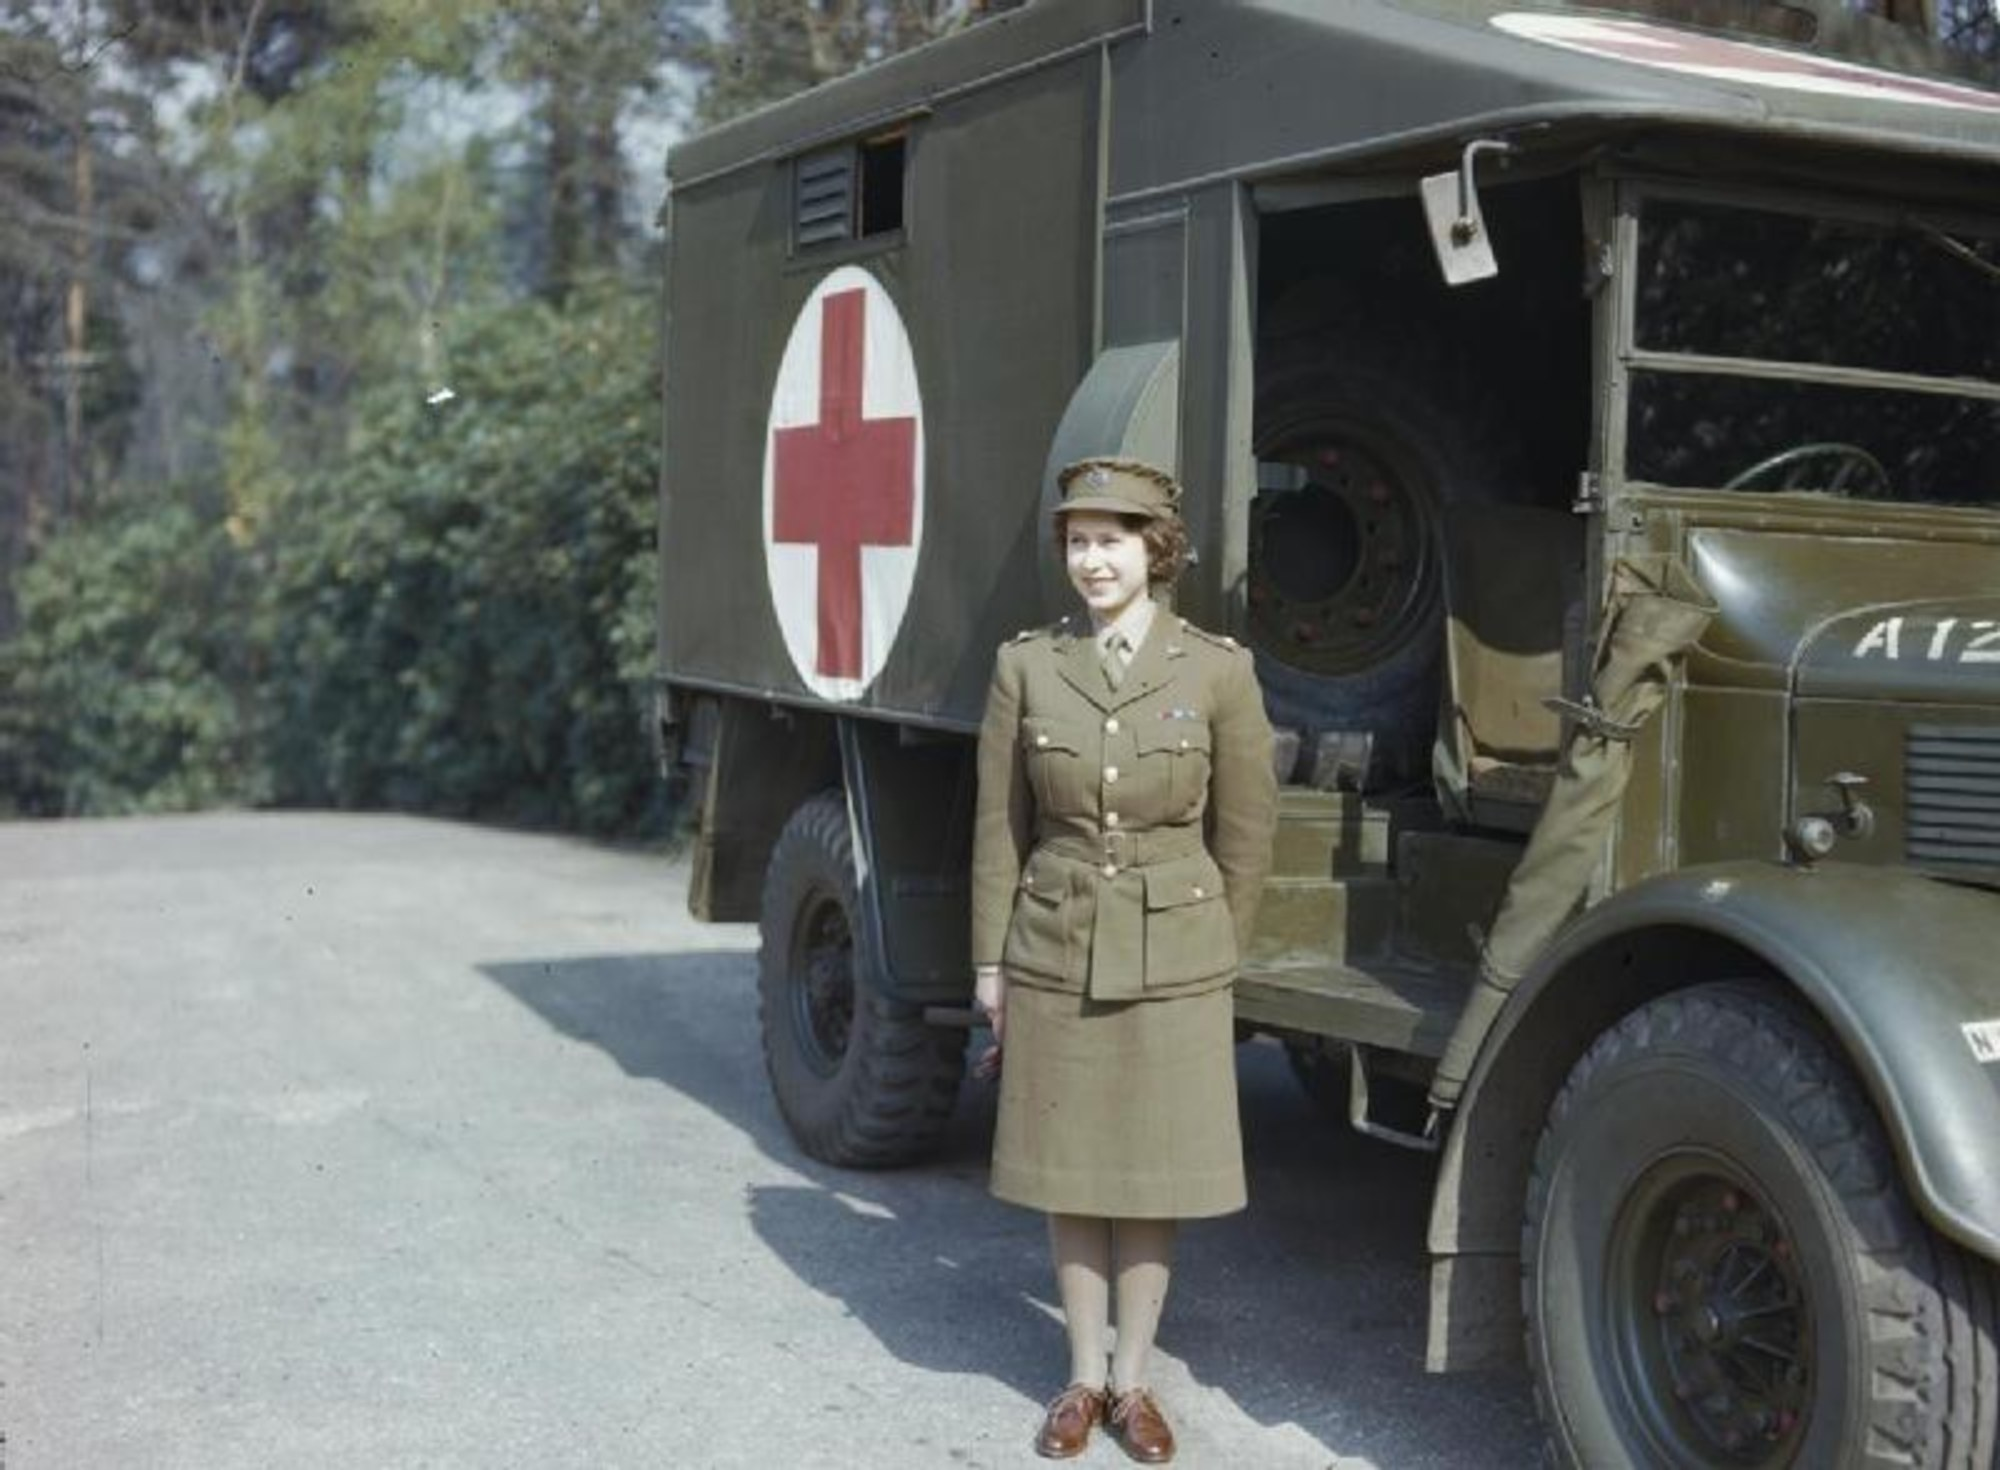 Green Energy Times Ambulance Inverter Wiring Diagram Queen Elizabeth When She Was A Truck Driving Princess Image Public Domain